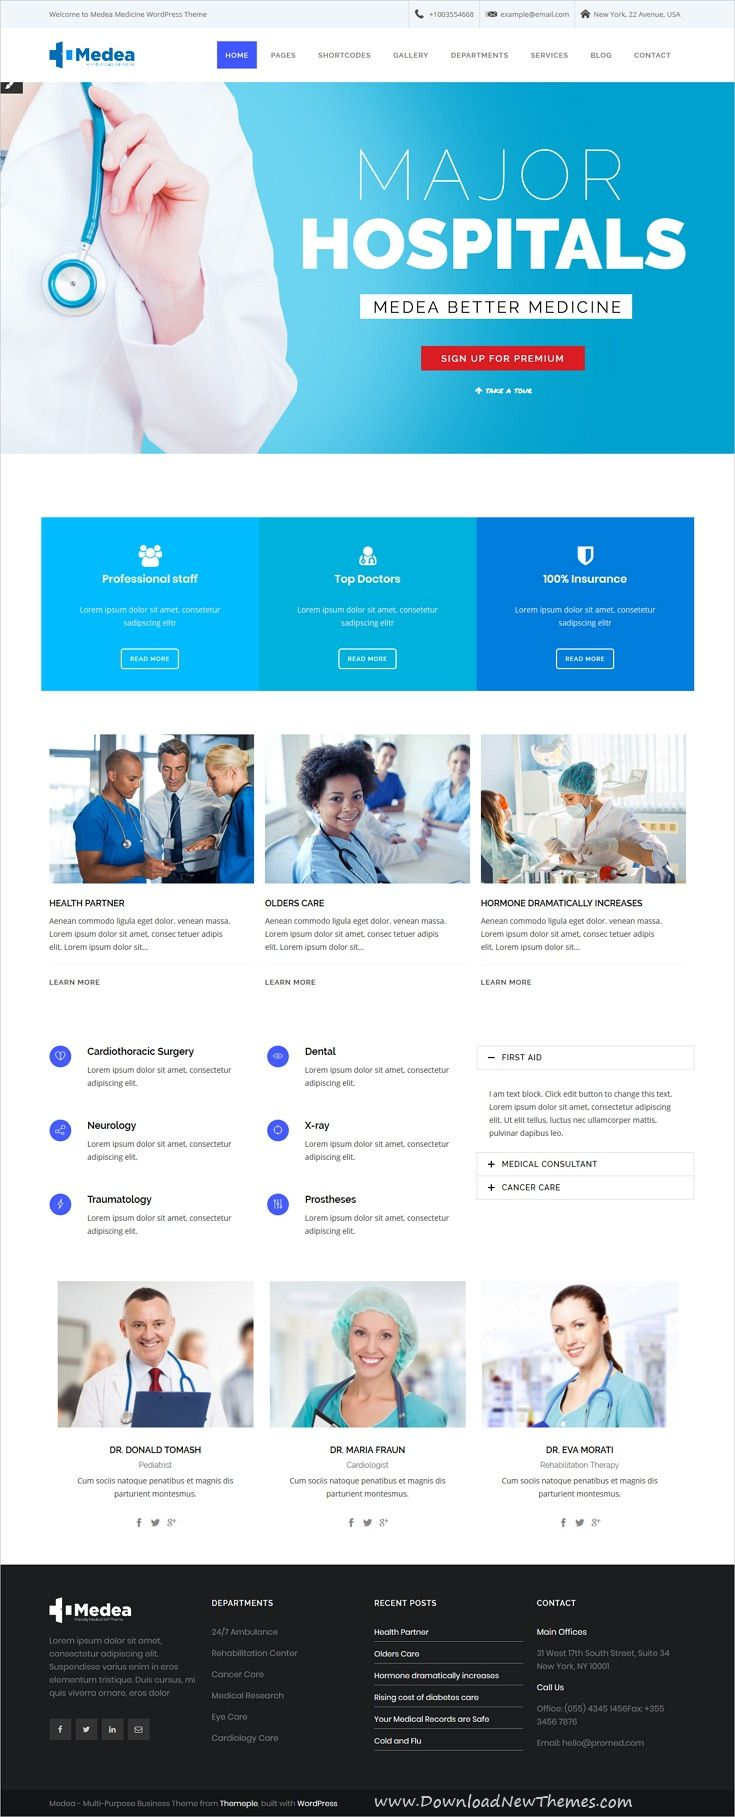 Medea Is Clean And Modern Design 6in1 Responsive Wordpressthemes For Hospitals Dental Clinic Laboratories Pharmaceuti Medical Theme Medical Dental Clinic